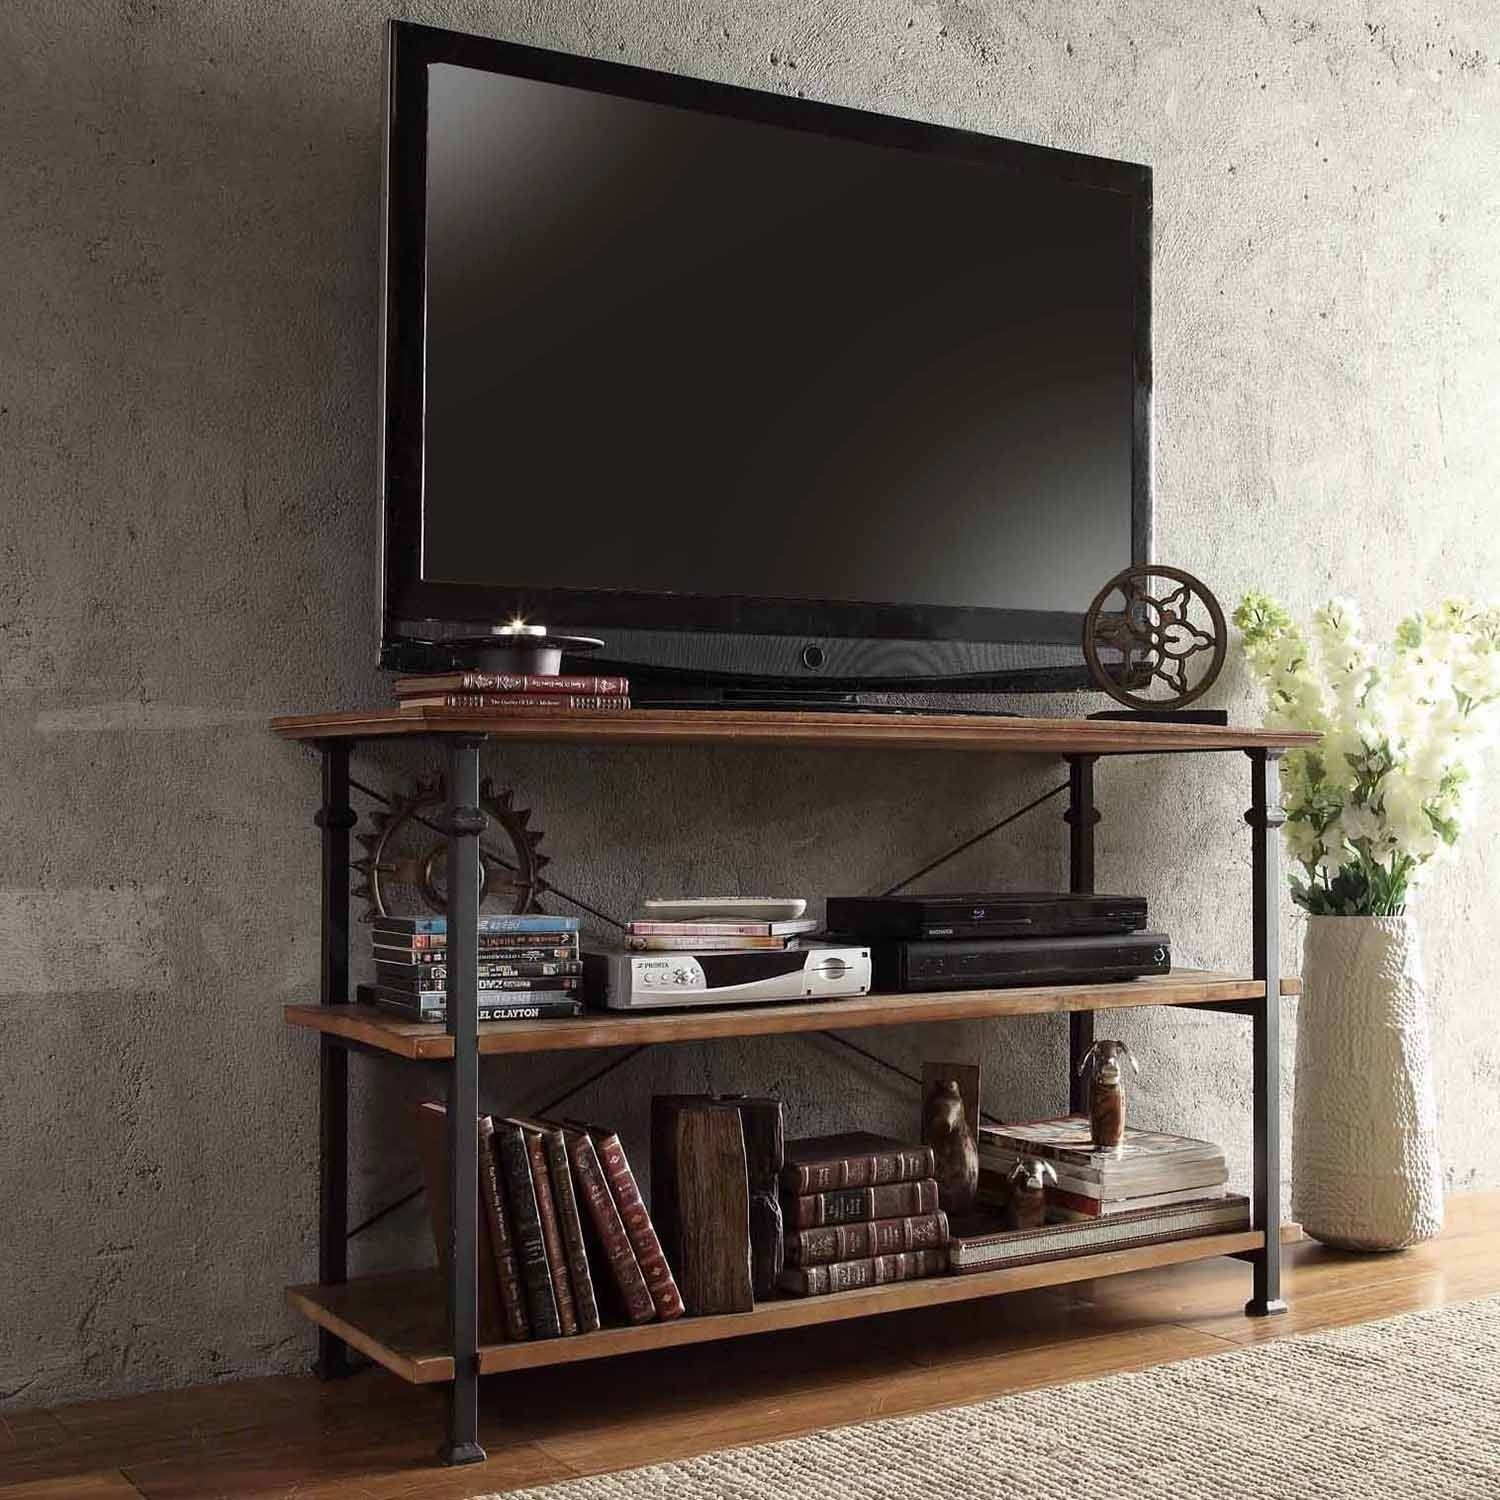 This Myra TV stand has a weathered and timeworn patina allowing traces of  natural wood and